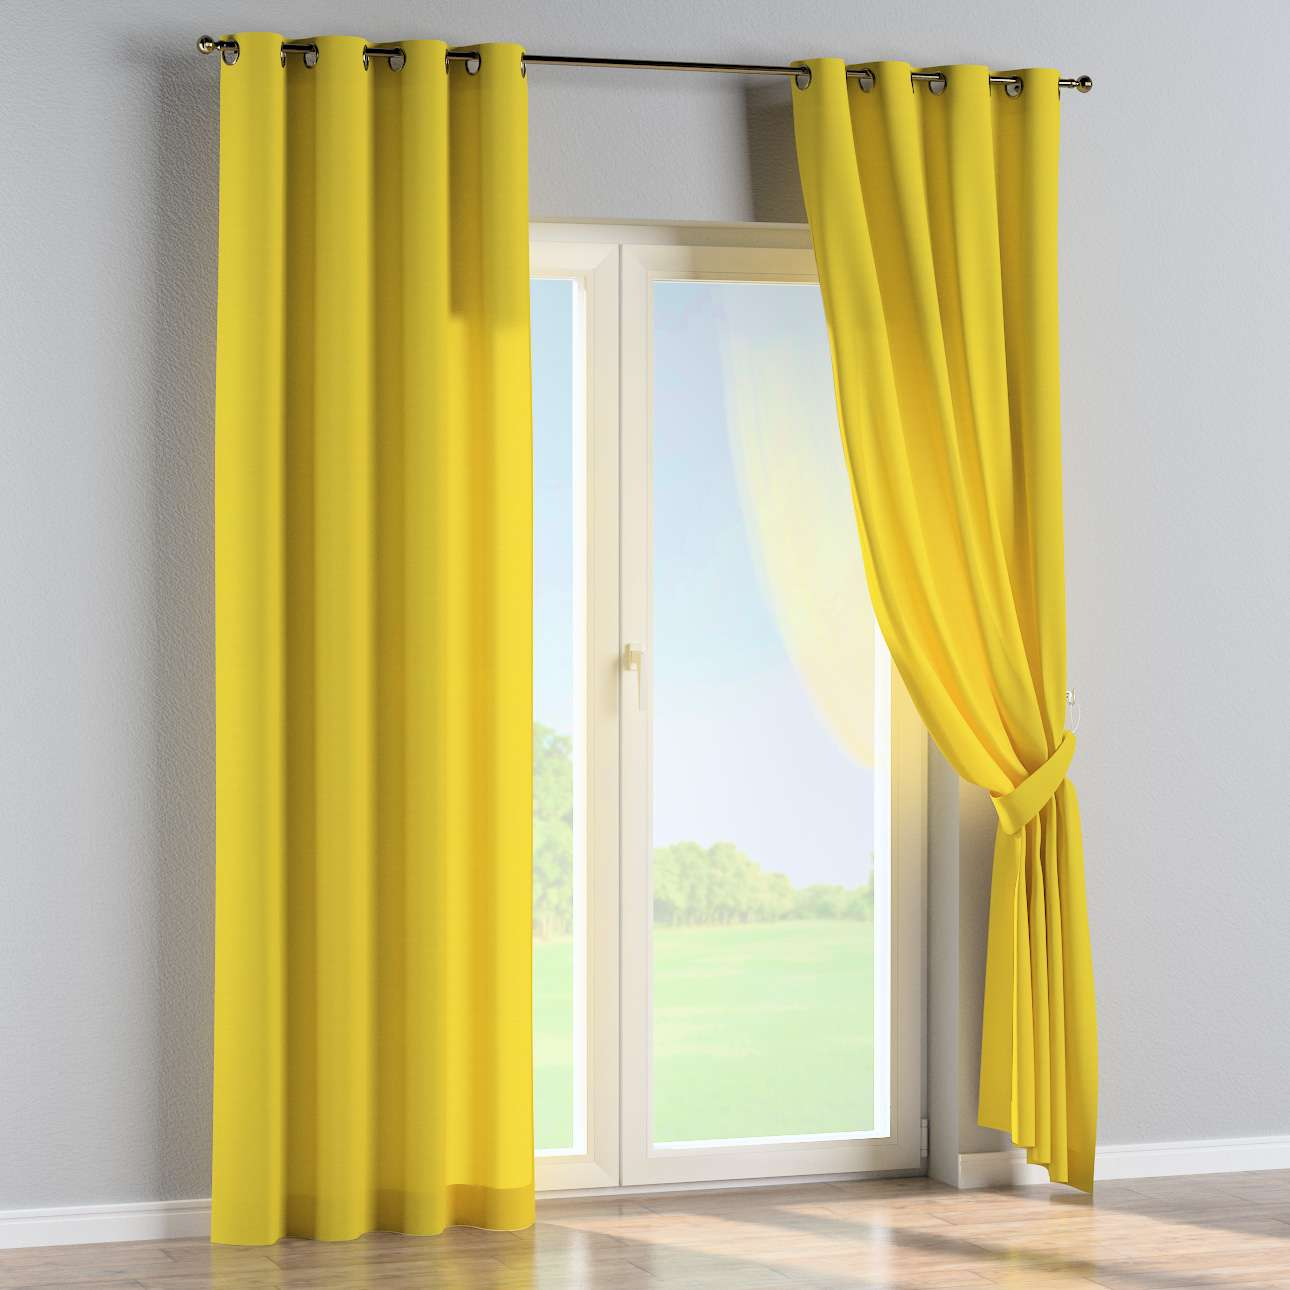 Eyelet curtains 130 x 260 cm (51 x 102 inch) in collection Loneta , fabric: 133-55